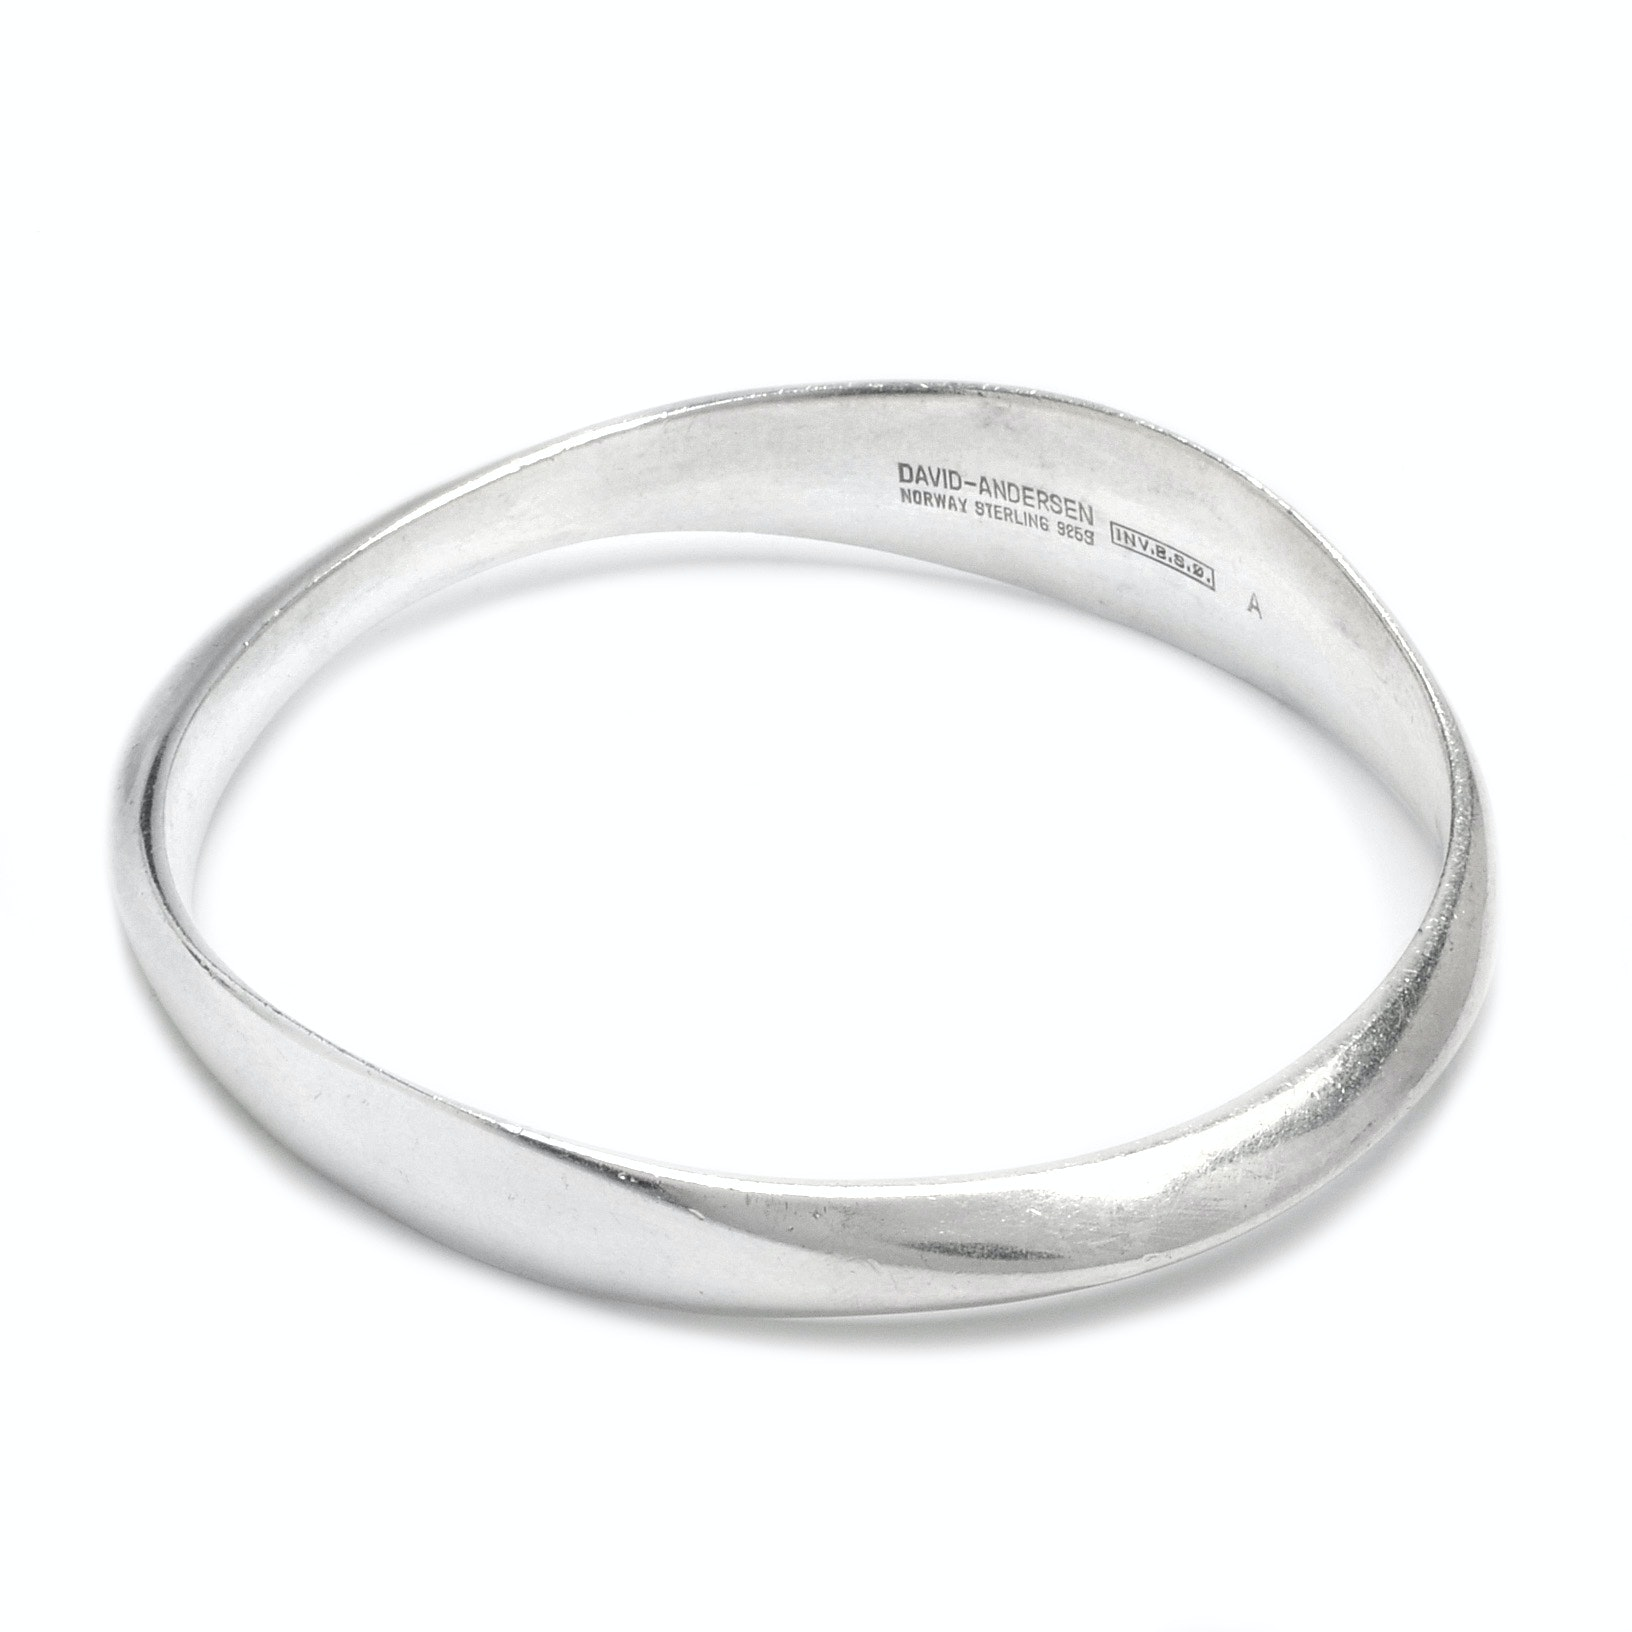 David Andersen Modernist Sterling Silver Bangle Bracelet